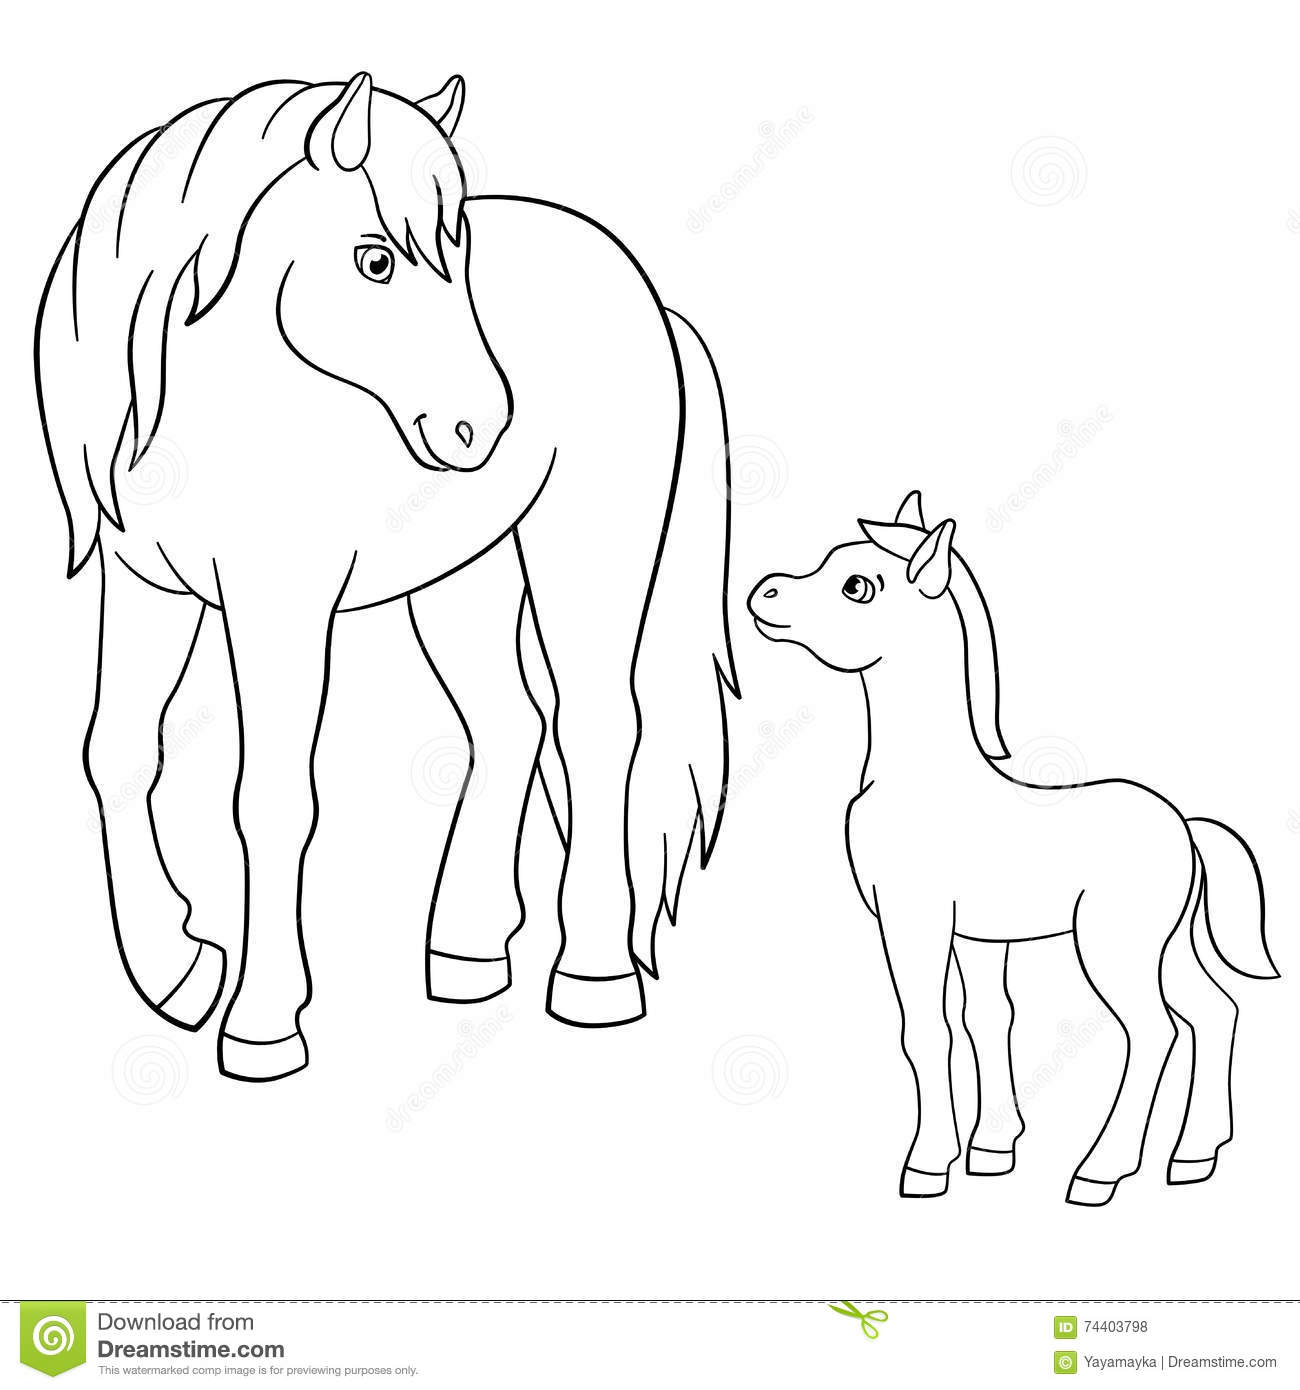 Horse Mother Foal Drawing Stock Illustrations 60 Horse Mother Foal Drawing Stock Illustrations Vectors Clipart Dreamstime